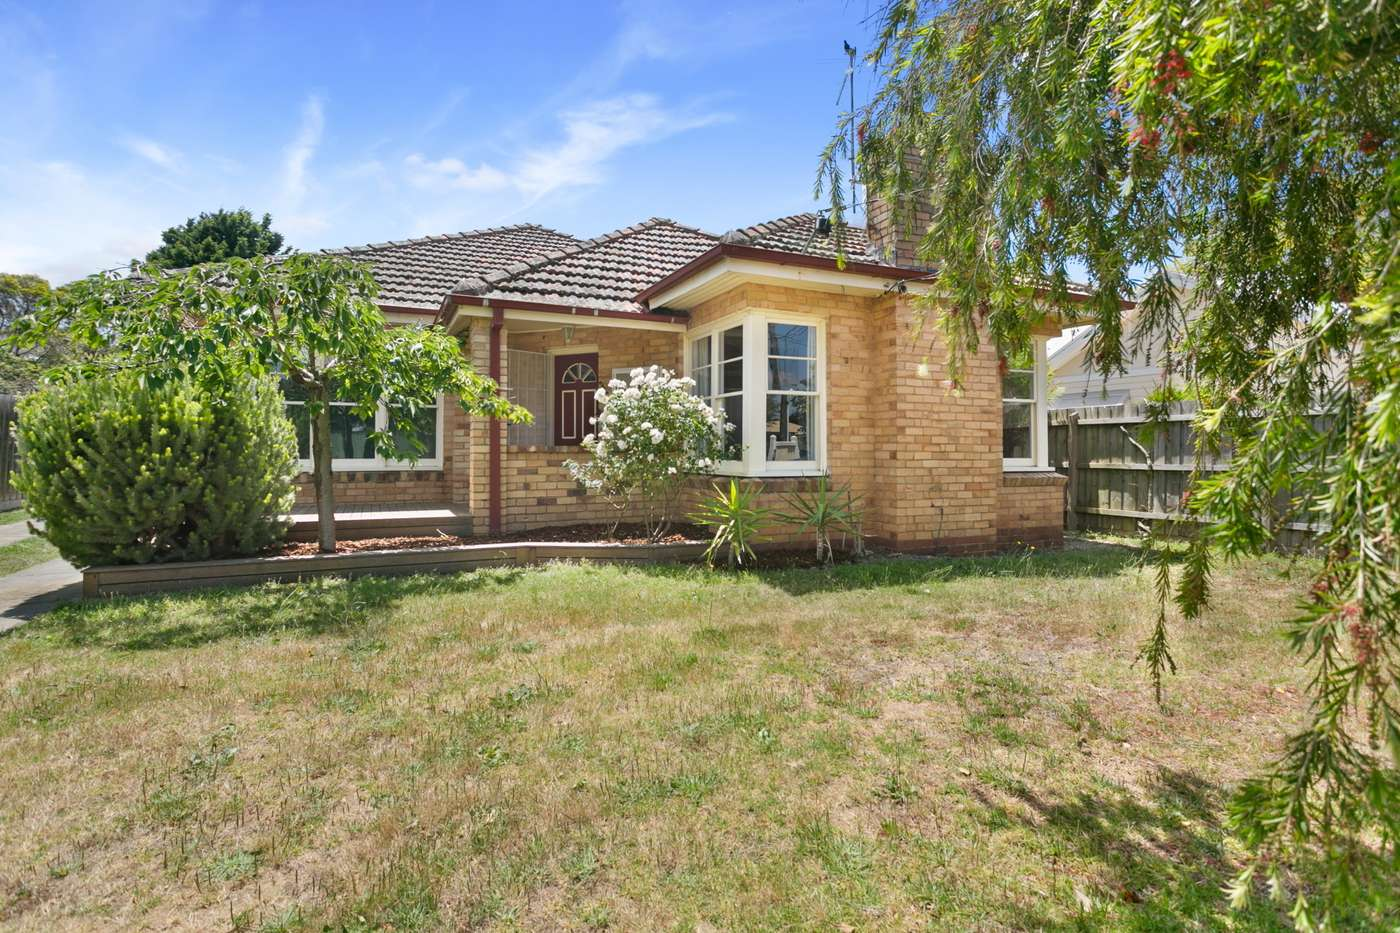 Main view of Homely house listing, 32 McKenzie Street, Seaford, VIC 3198